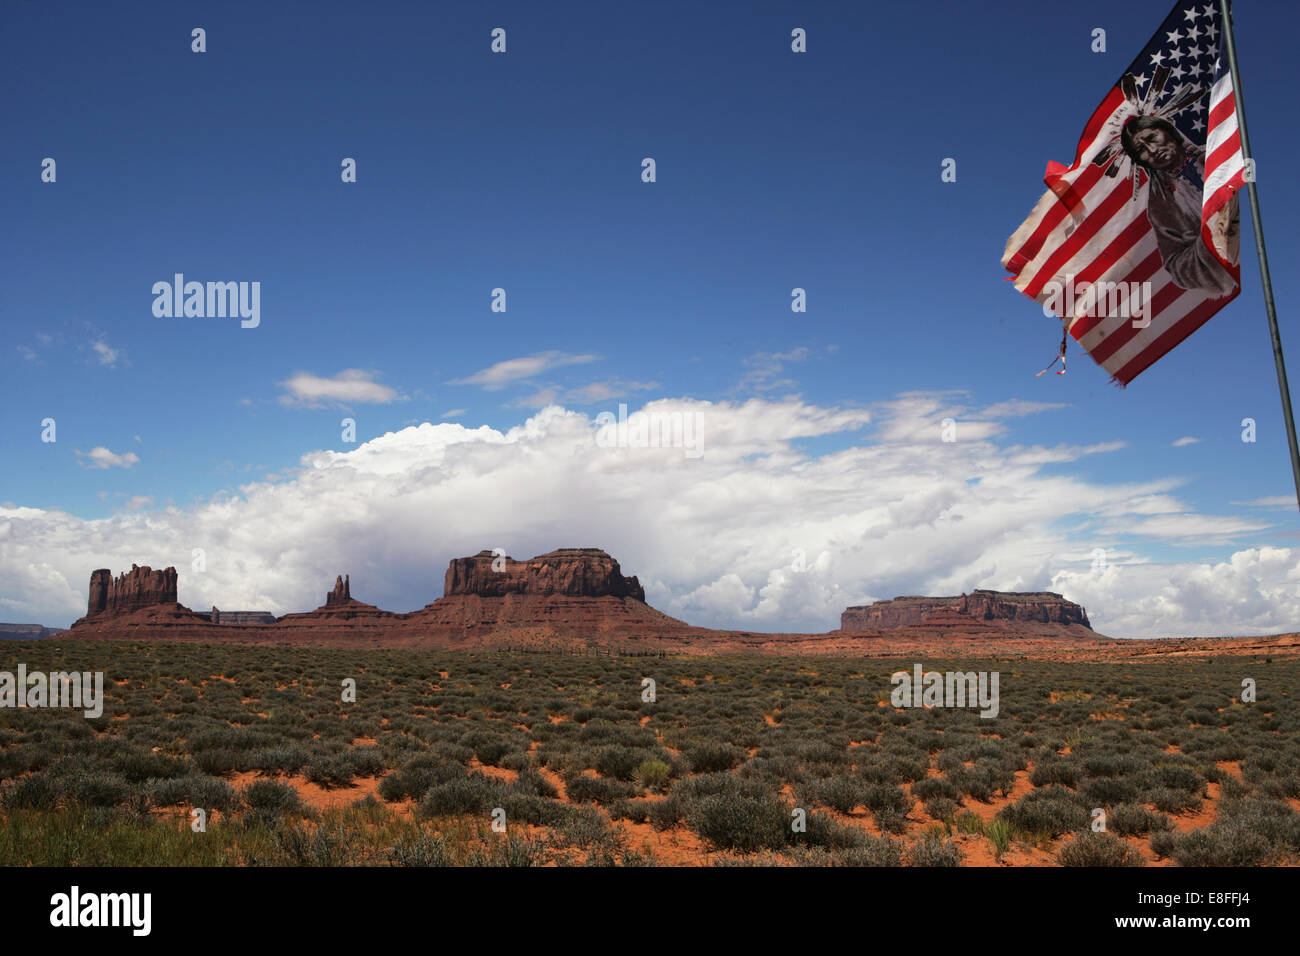 Ee.Uu., Arizona, Monument Valley Navajo Tribal Park Imagen De Stock